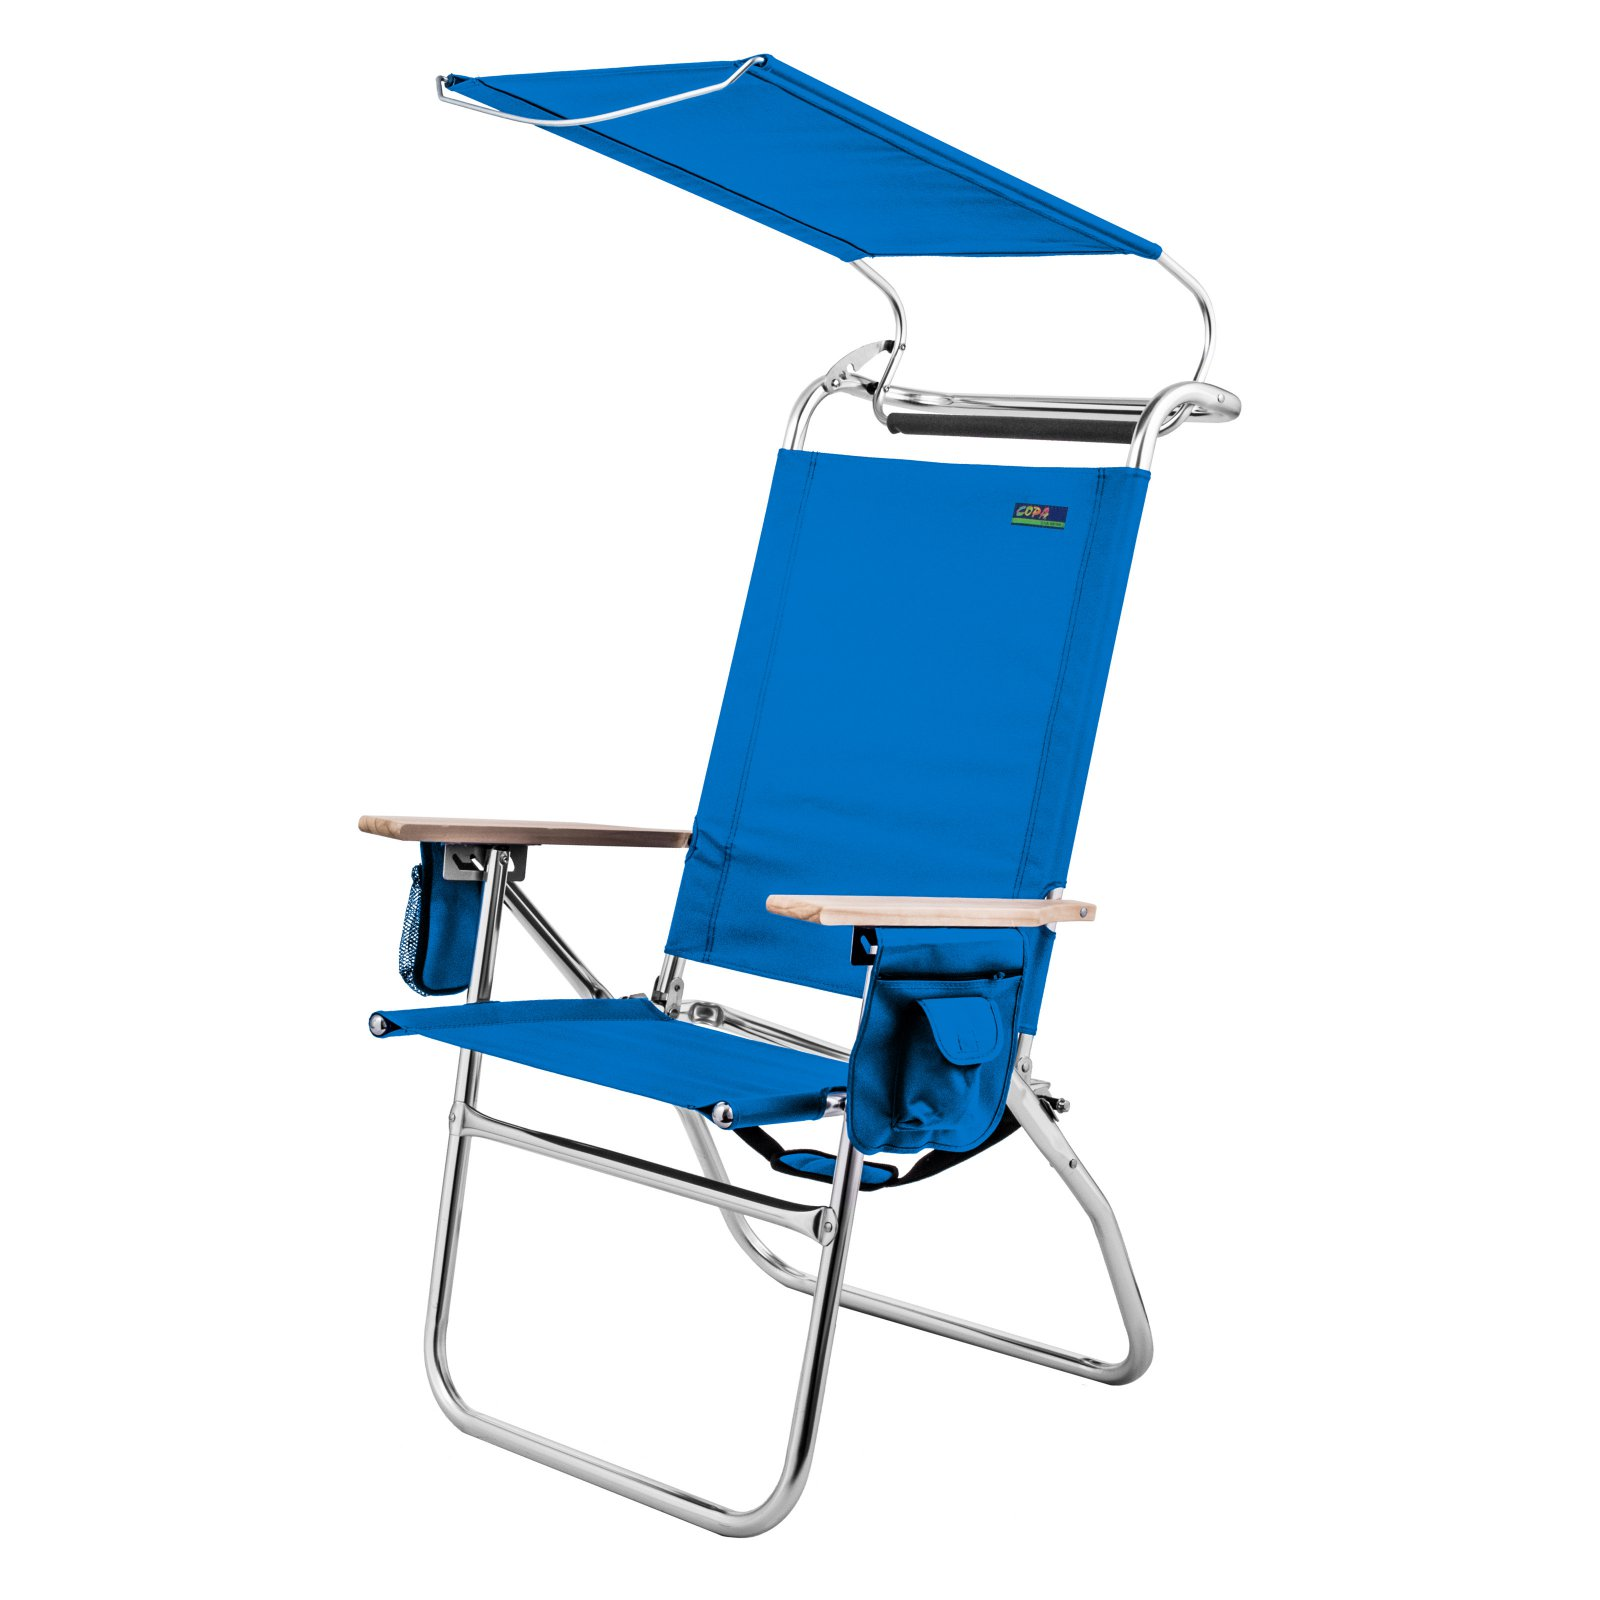 Magnificent Outdoor Copa 4 Position Big Tycoon Canopy Beach Chair Blue Home Interior And Landscaping Ferensignezvosmurscom